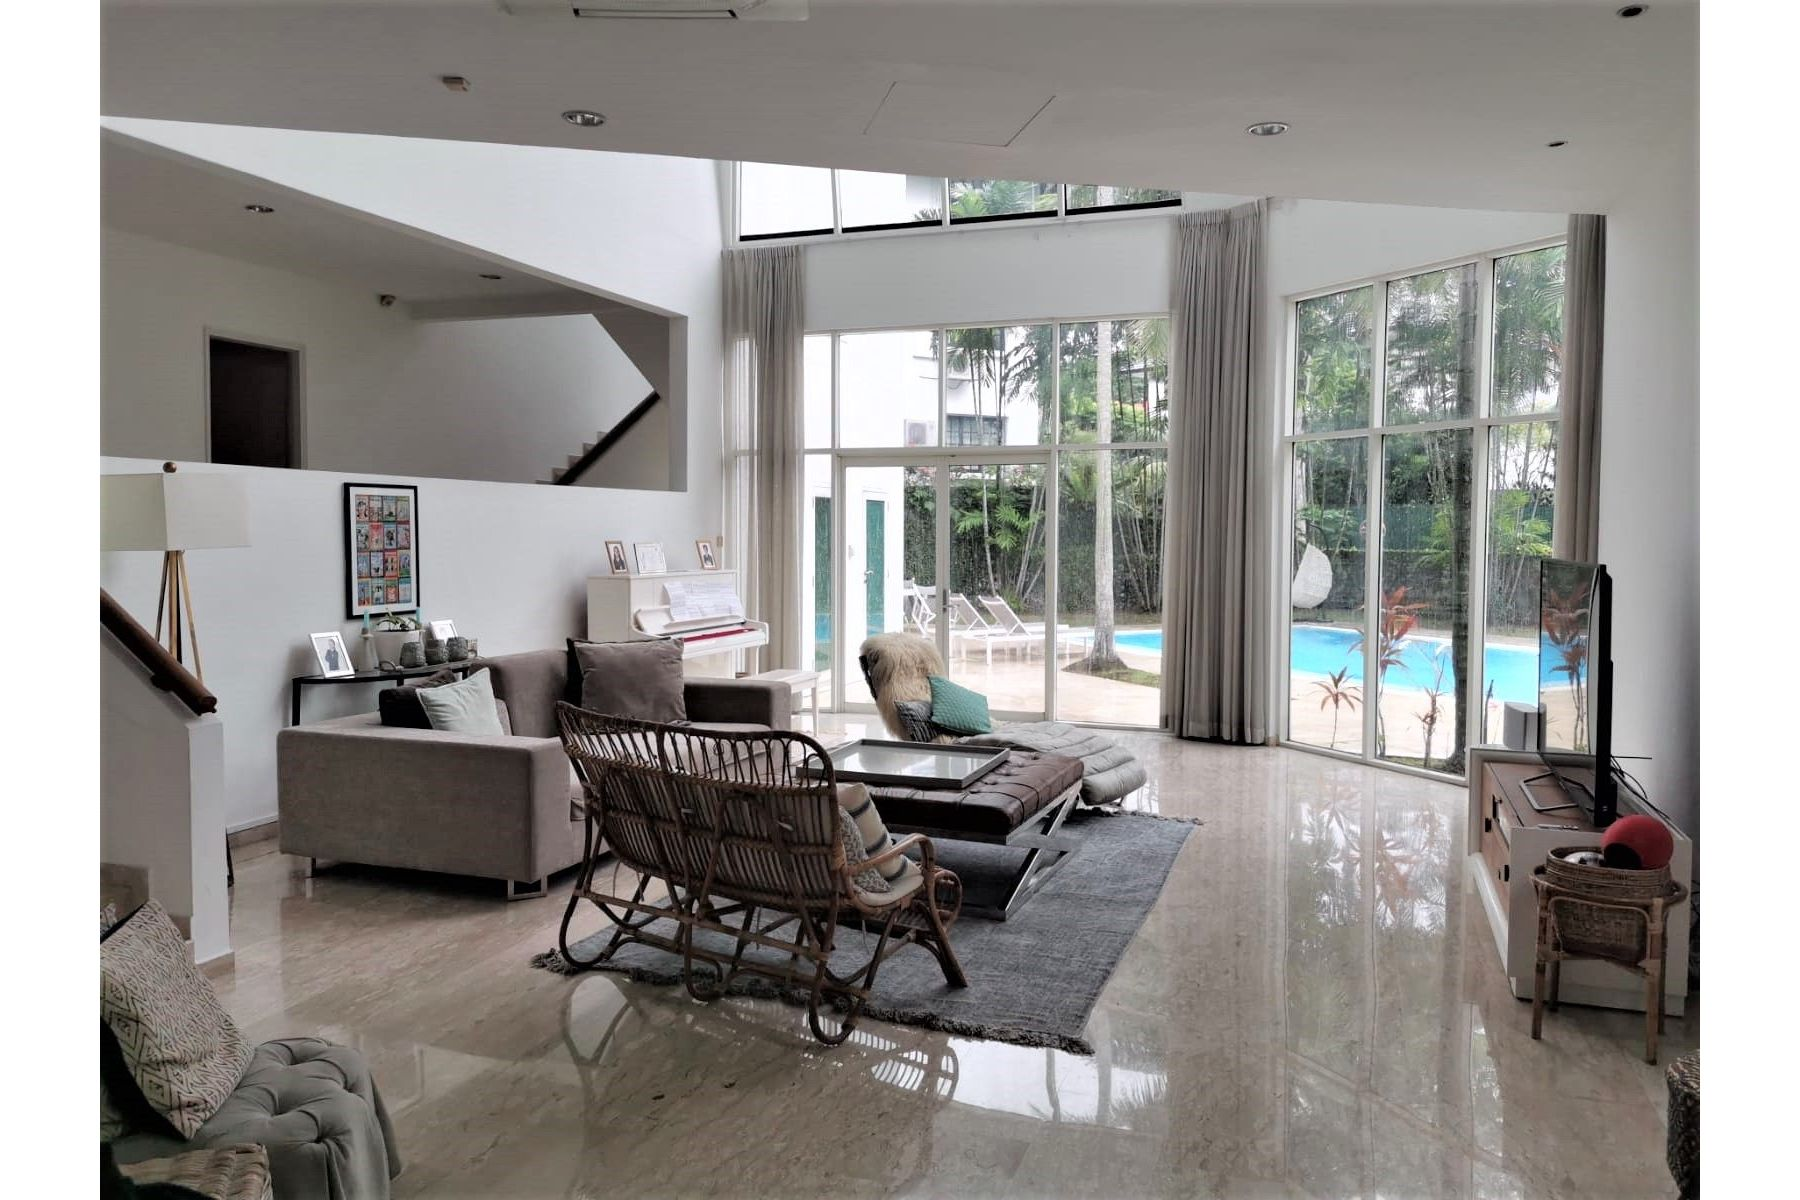 Single Family Homes for Sale at Good Class Bungalow at Oei Tiong Ham Park Singapore, Cities In Singapore Singapore